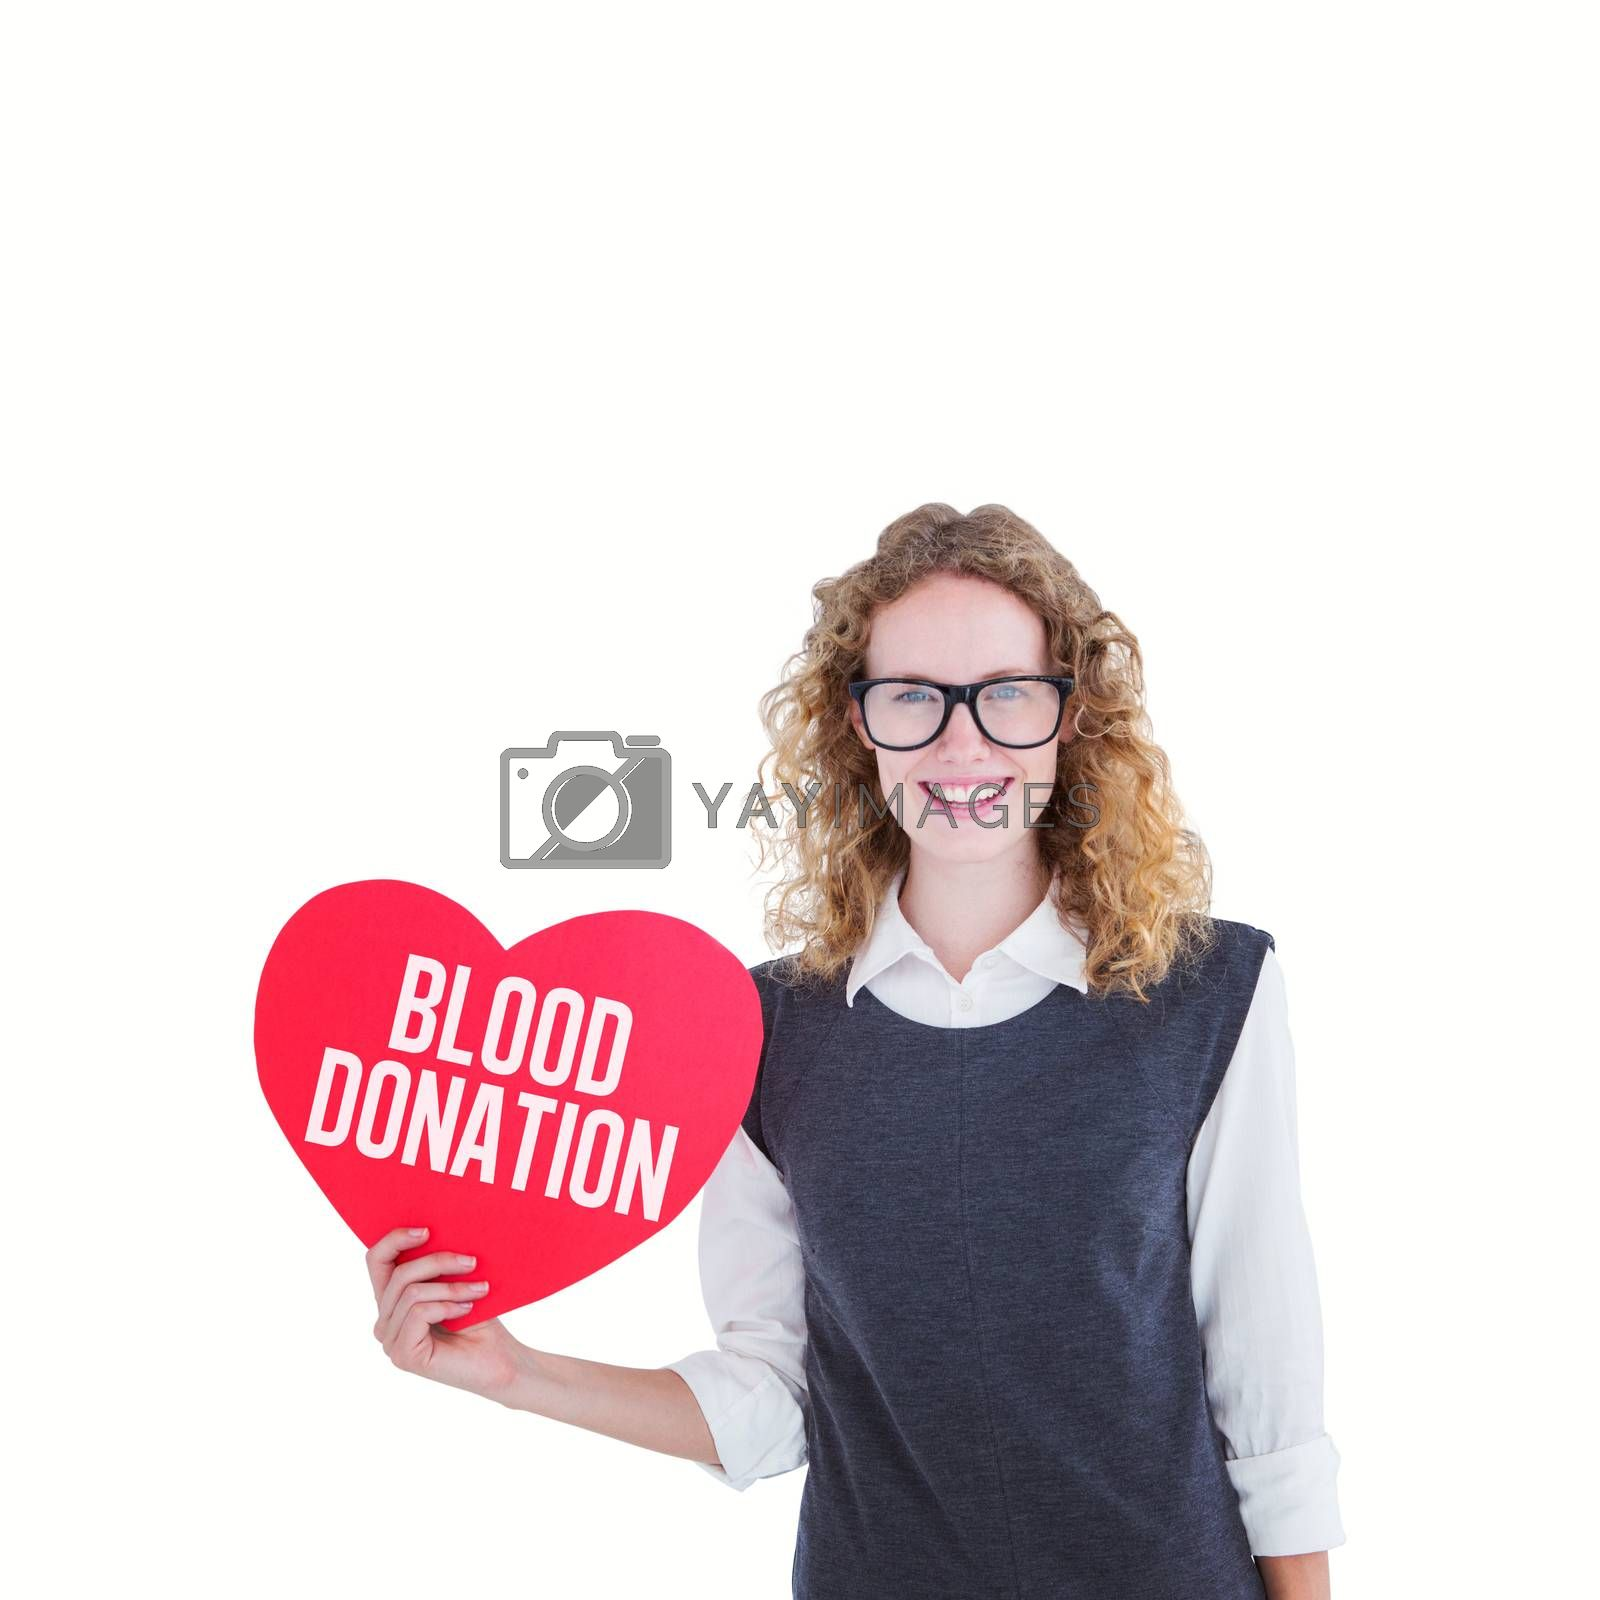 Geeky hipster holding heart card against blood donation